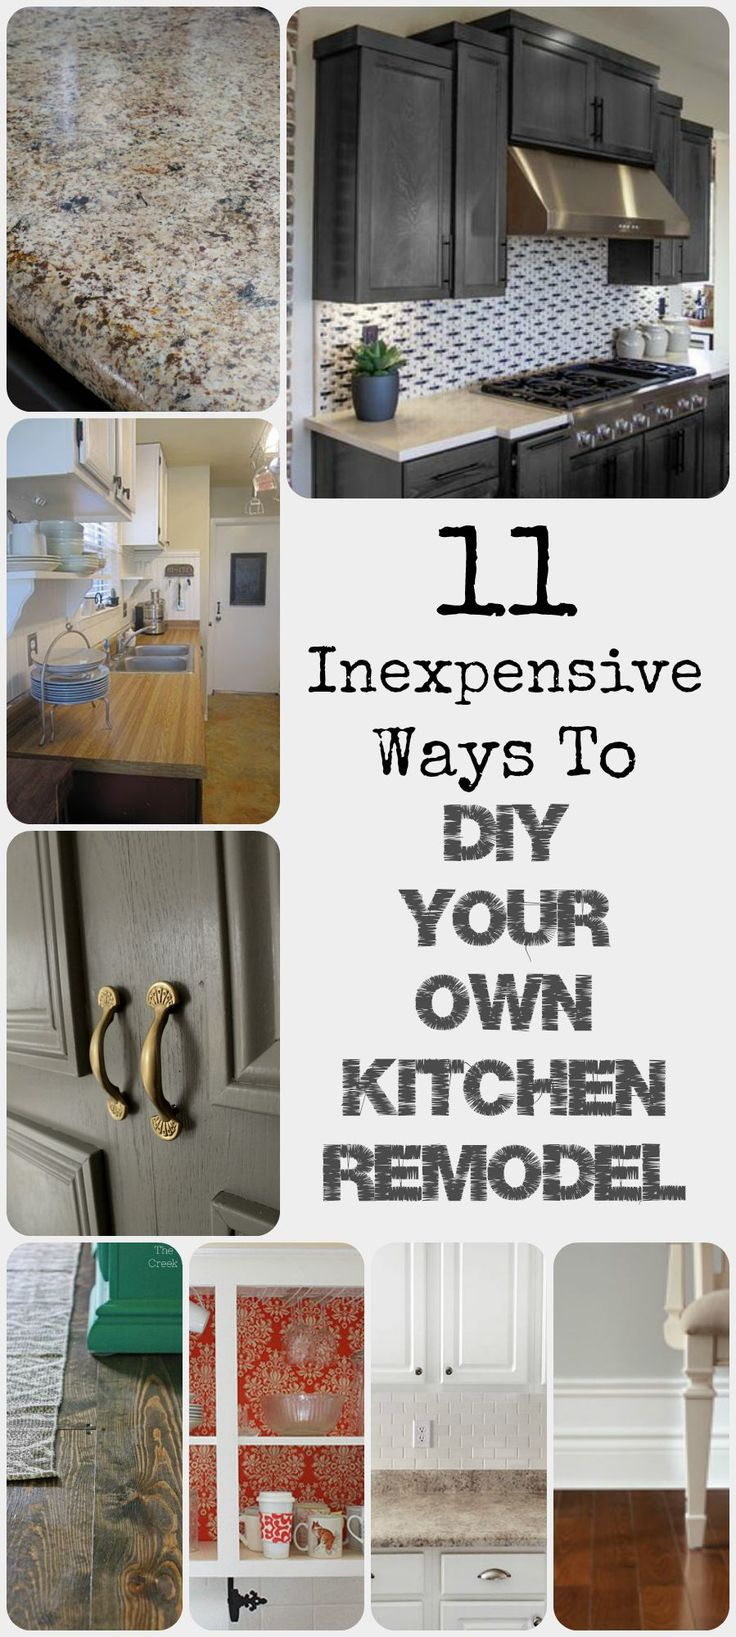 Most people would LOVE a new kitchen remodel. But, it's SO expensive to remodel a kitchen, with cabinets, flooring, backsplash, countertops, etc. It gets really pricey. Here are some ways you can u...